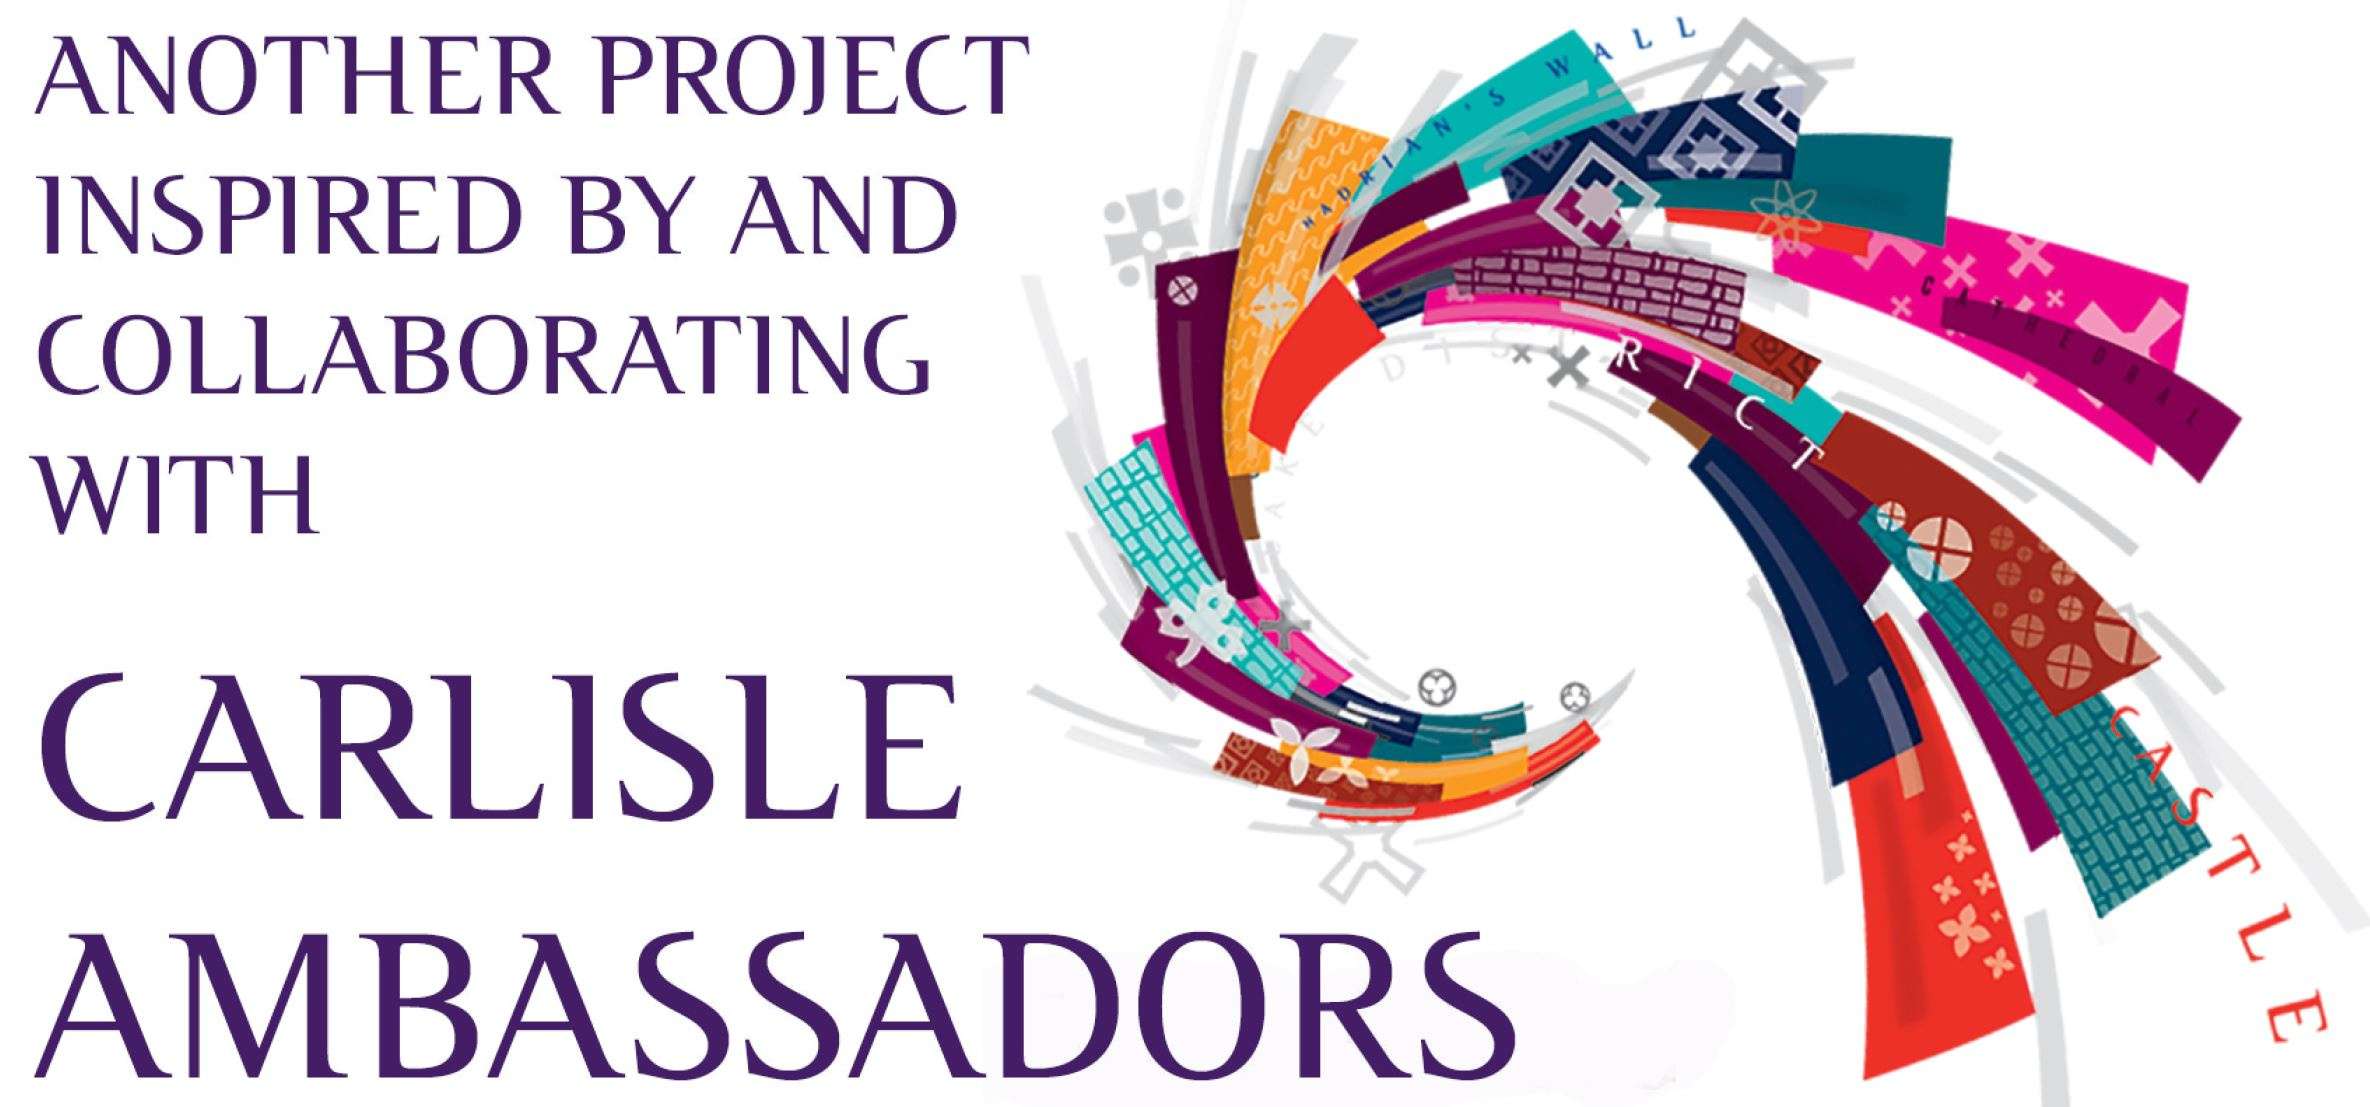 Suggest a project idea for Carlisle Ambassadors